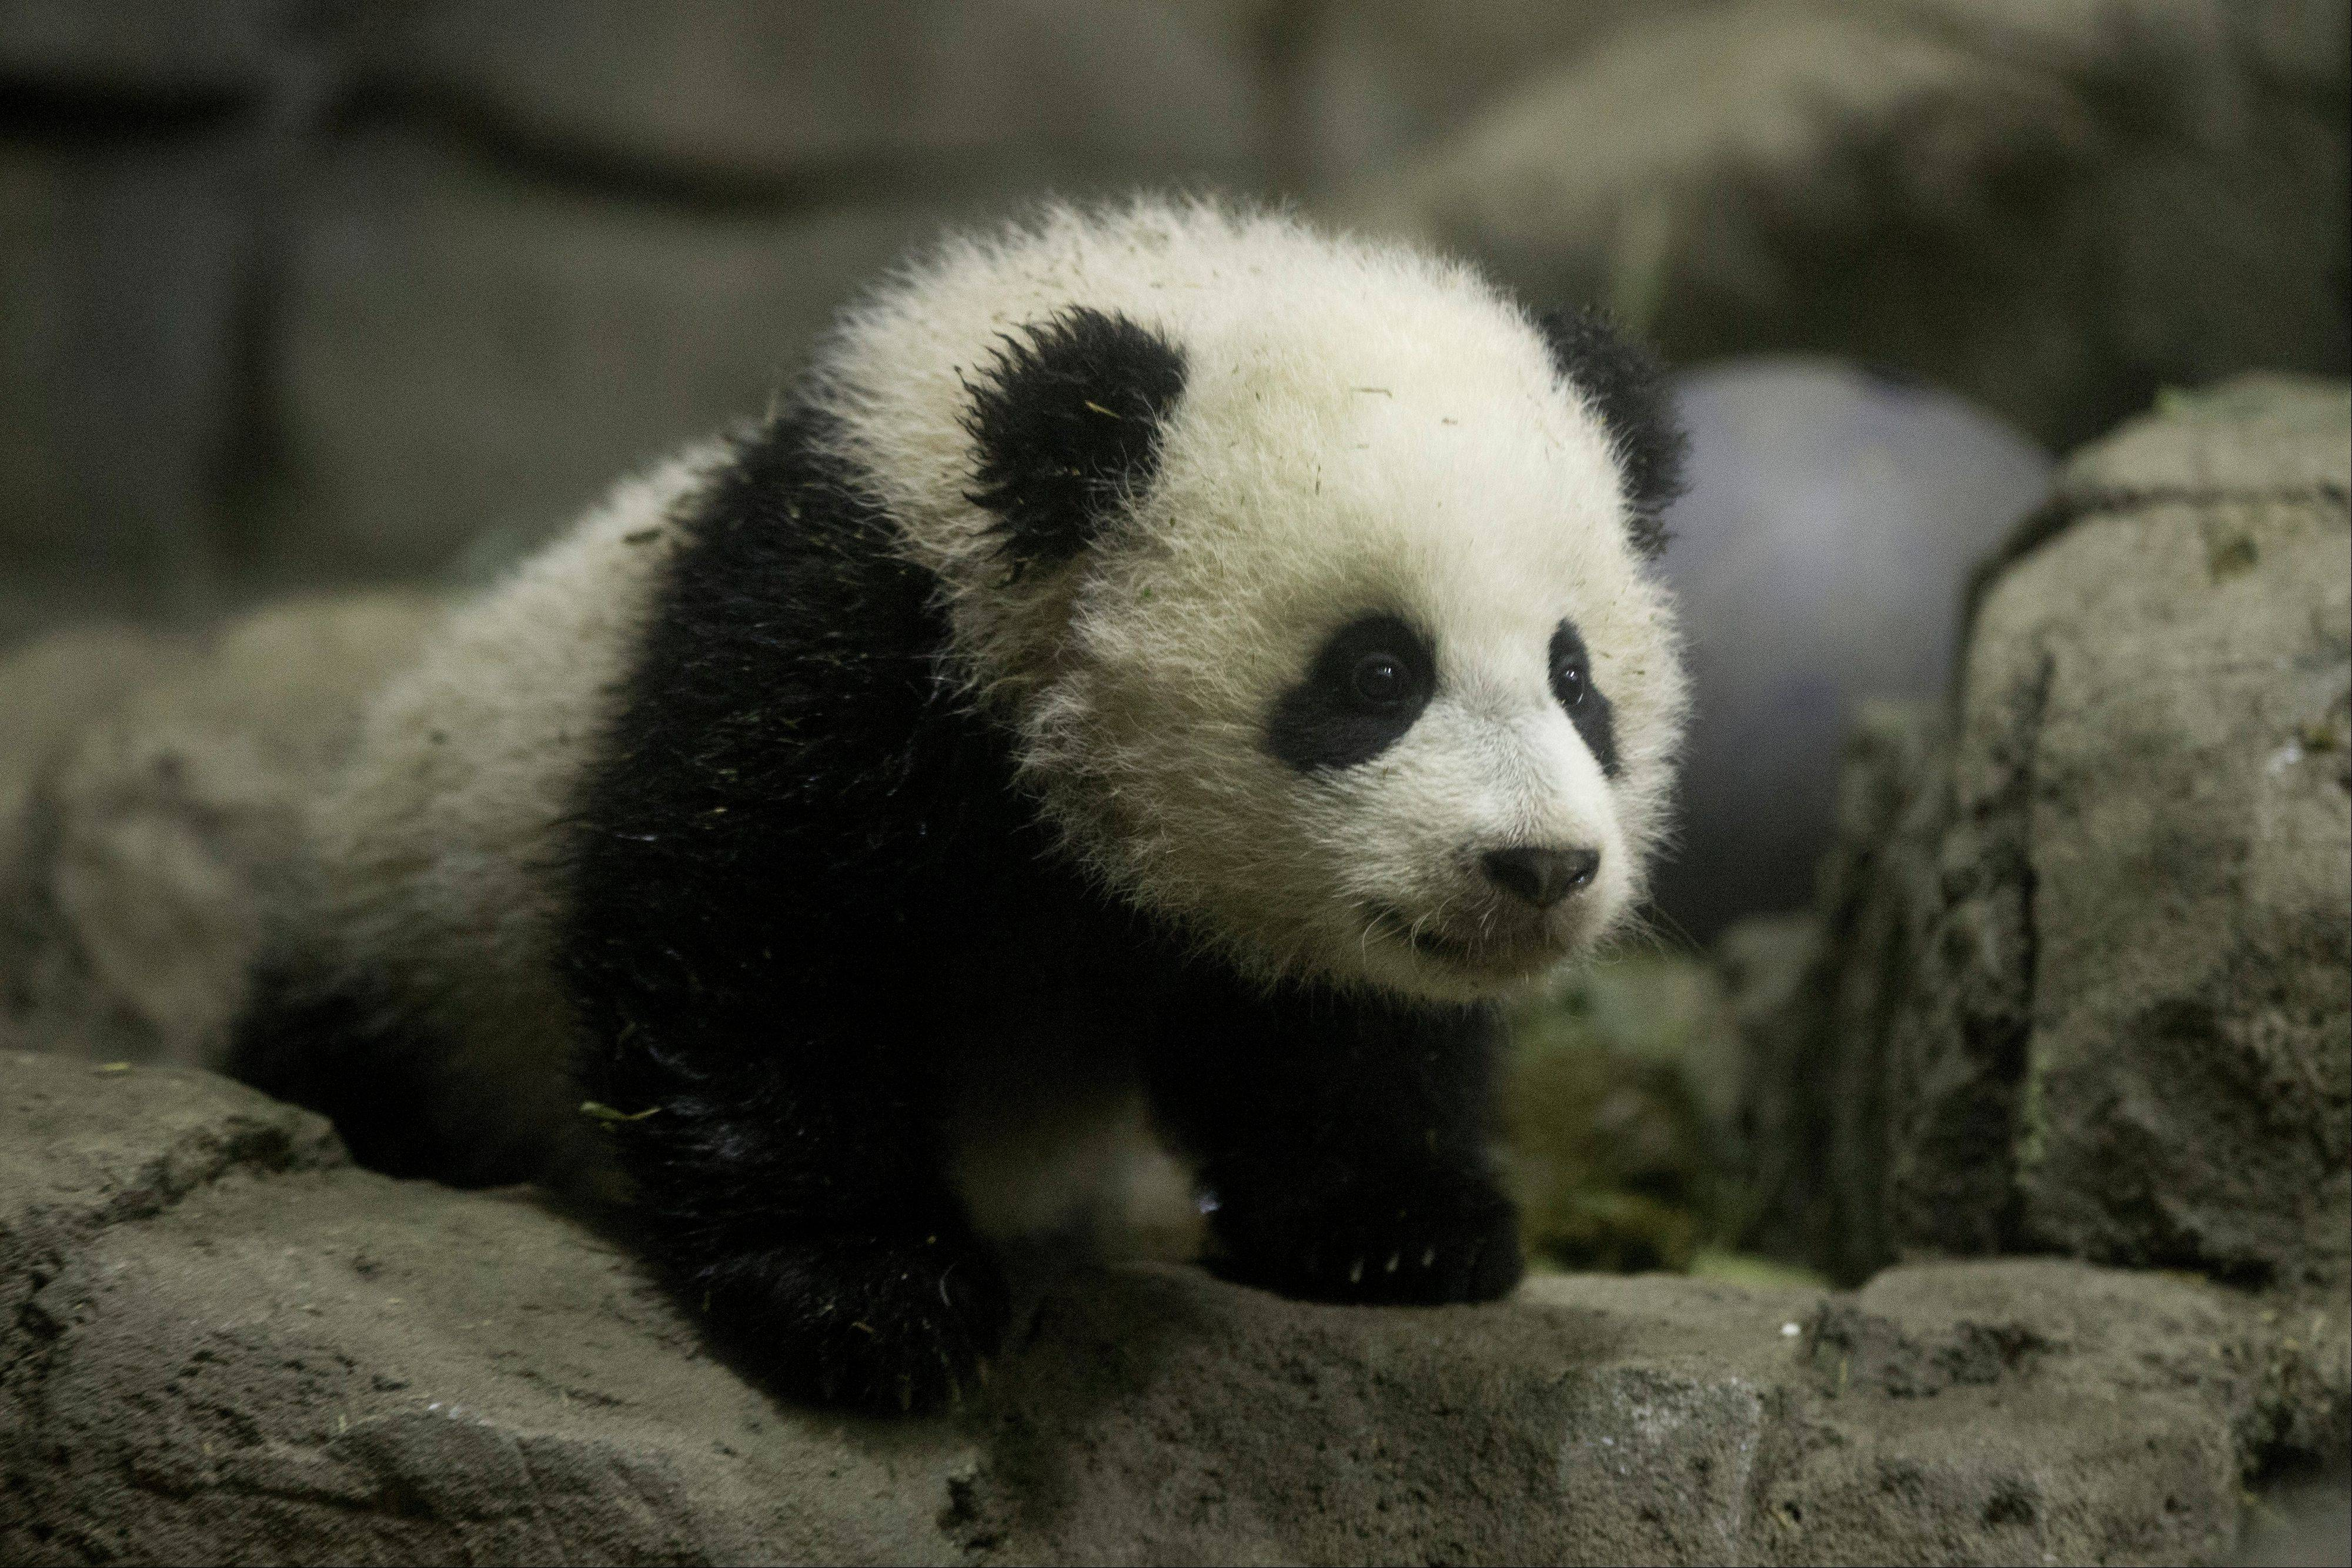 Bao Bao, the four and a half month old giant panda, makes her public debut at an indoor habitat at the National Zoo in Washington Monday. Bao Bao, who now weighs 16.9 pounds, was born to the zoo�s female giant panda Mei Xiang and male giant panda Tian Tian.